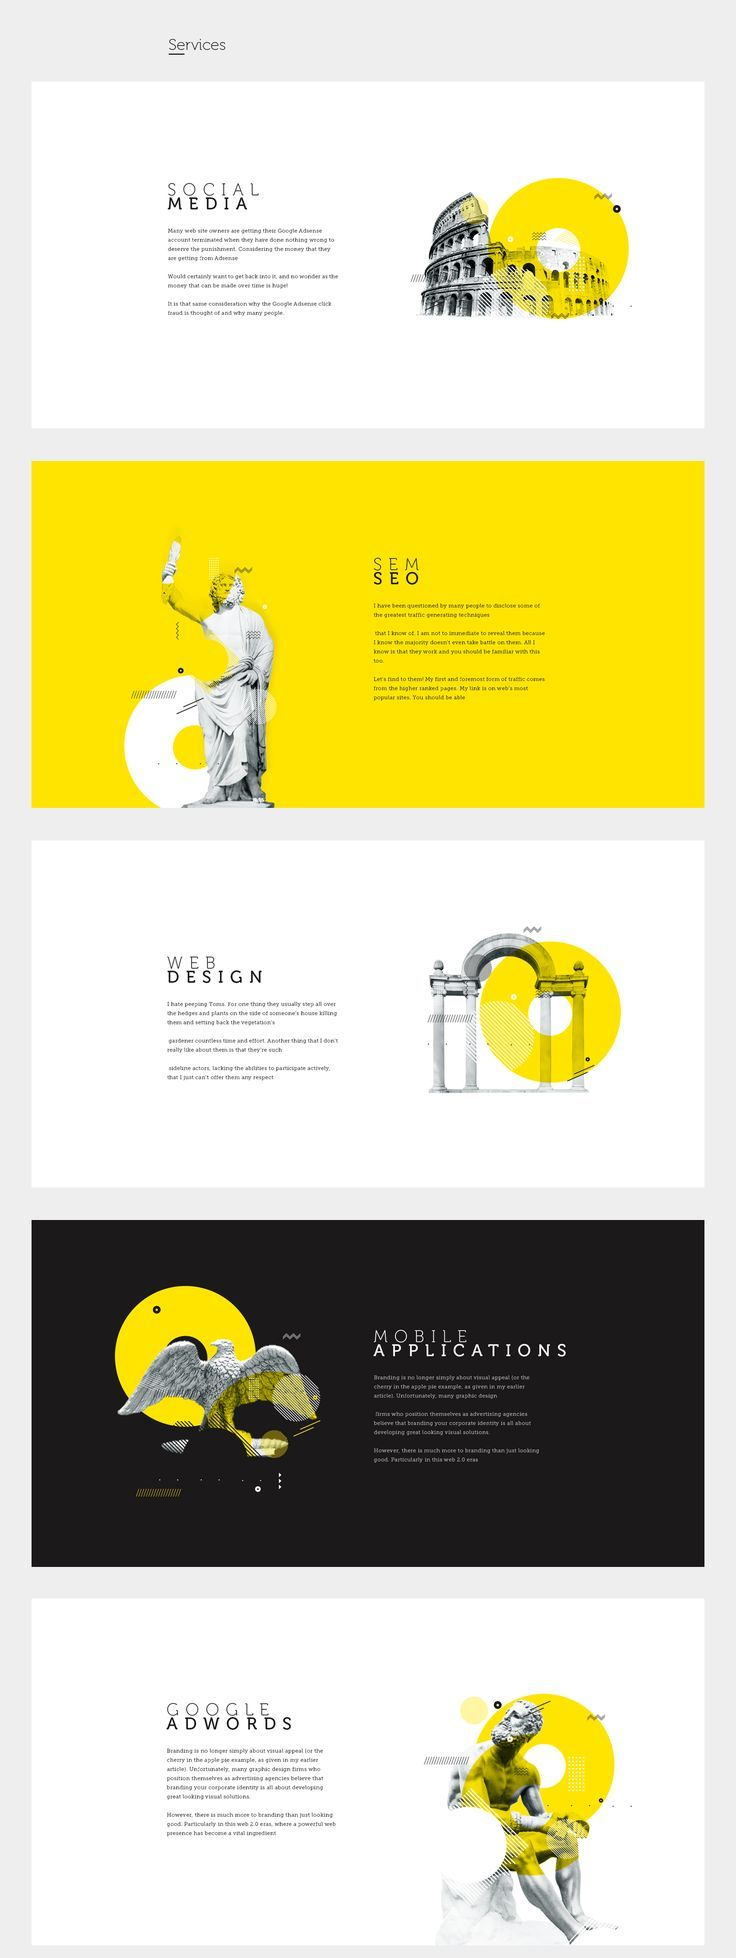 virtute | career | pinterest | graphics, presentation design and ui ux, Presentation templates